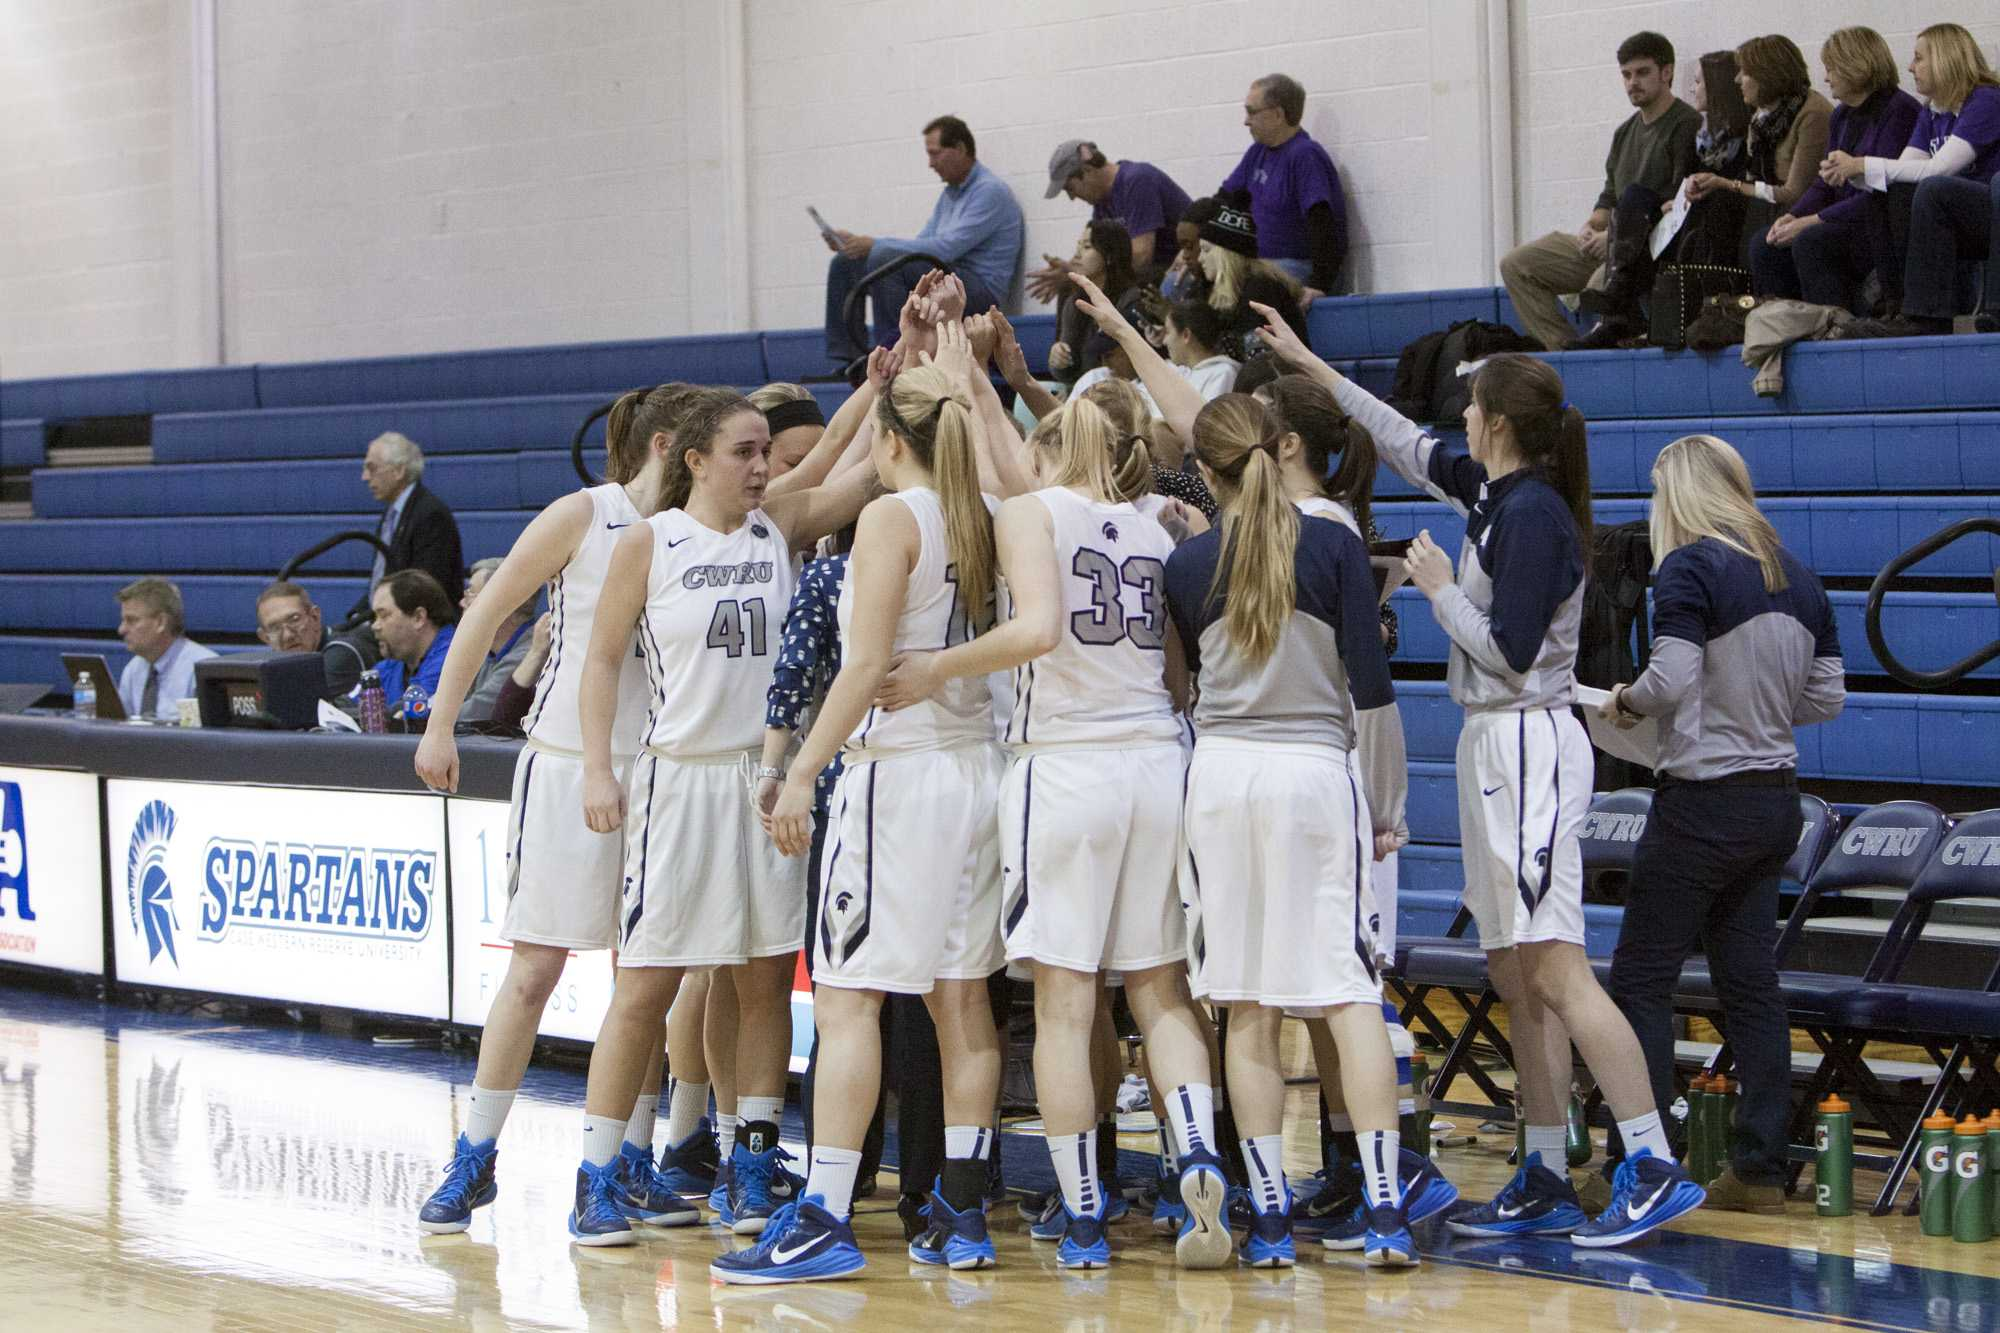 The women's basketball looks to improve on last season as they kick off against Denison on Friday.